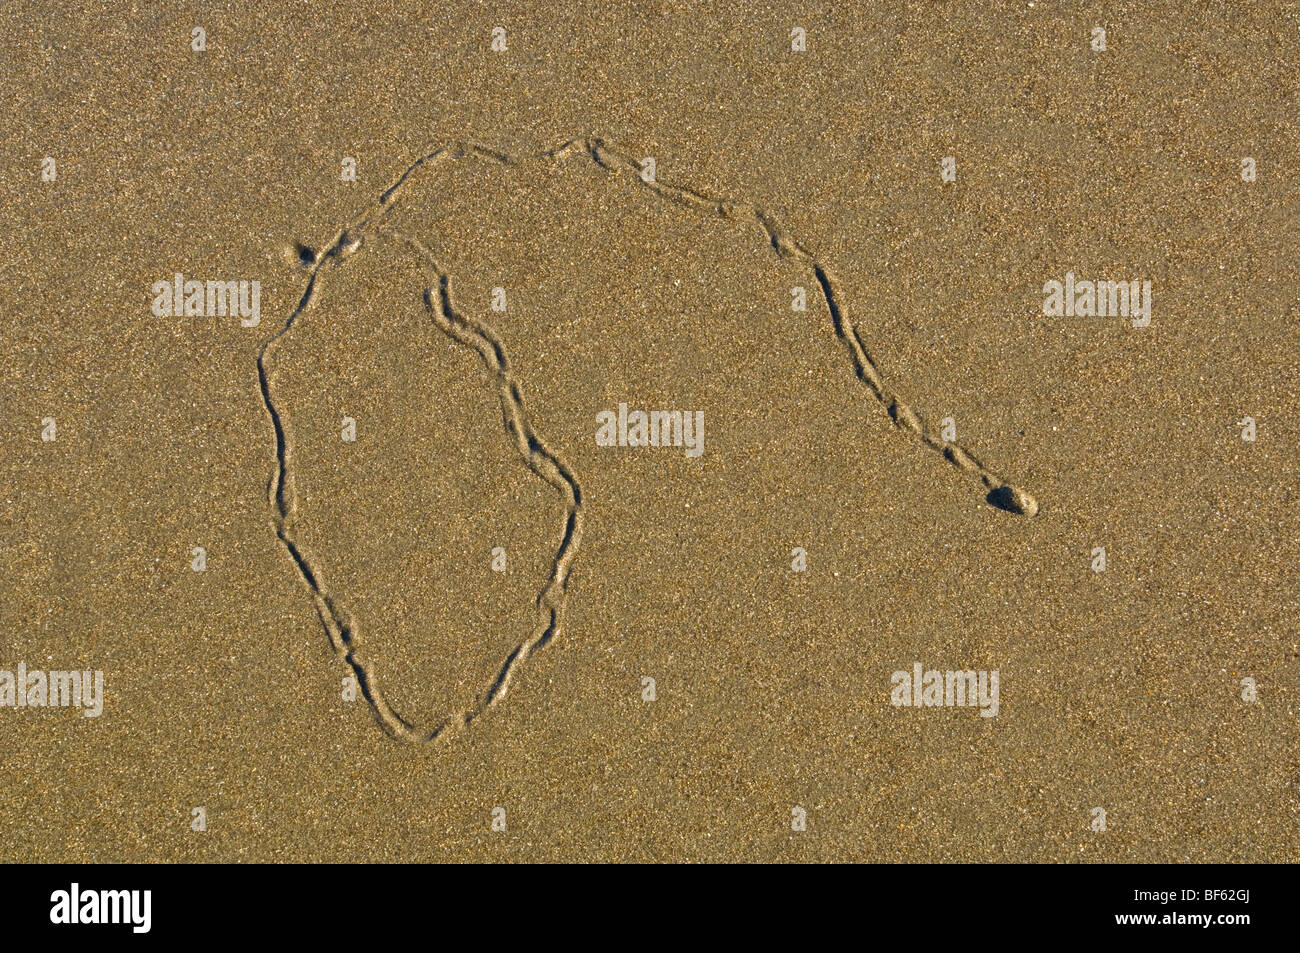 Snail trail in sand at low tide, Trinidad State Beach, Humboldt County, California - Stock Image